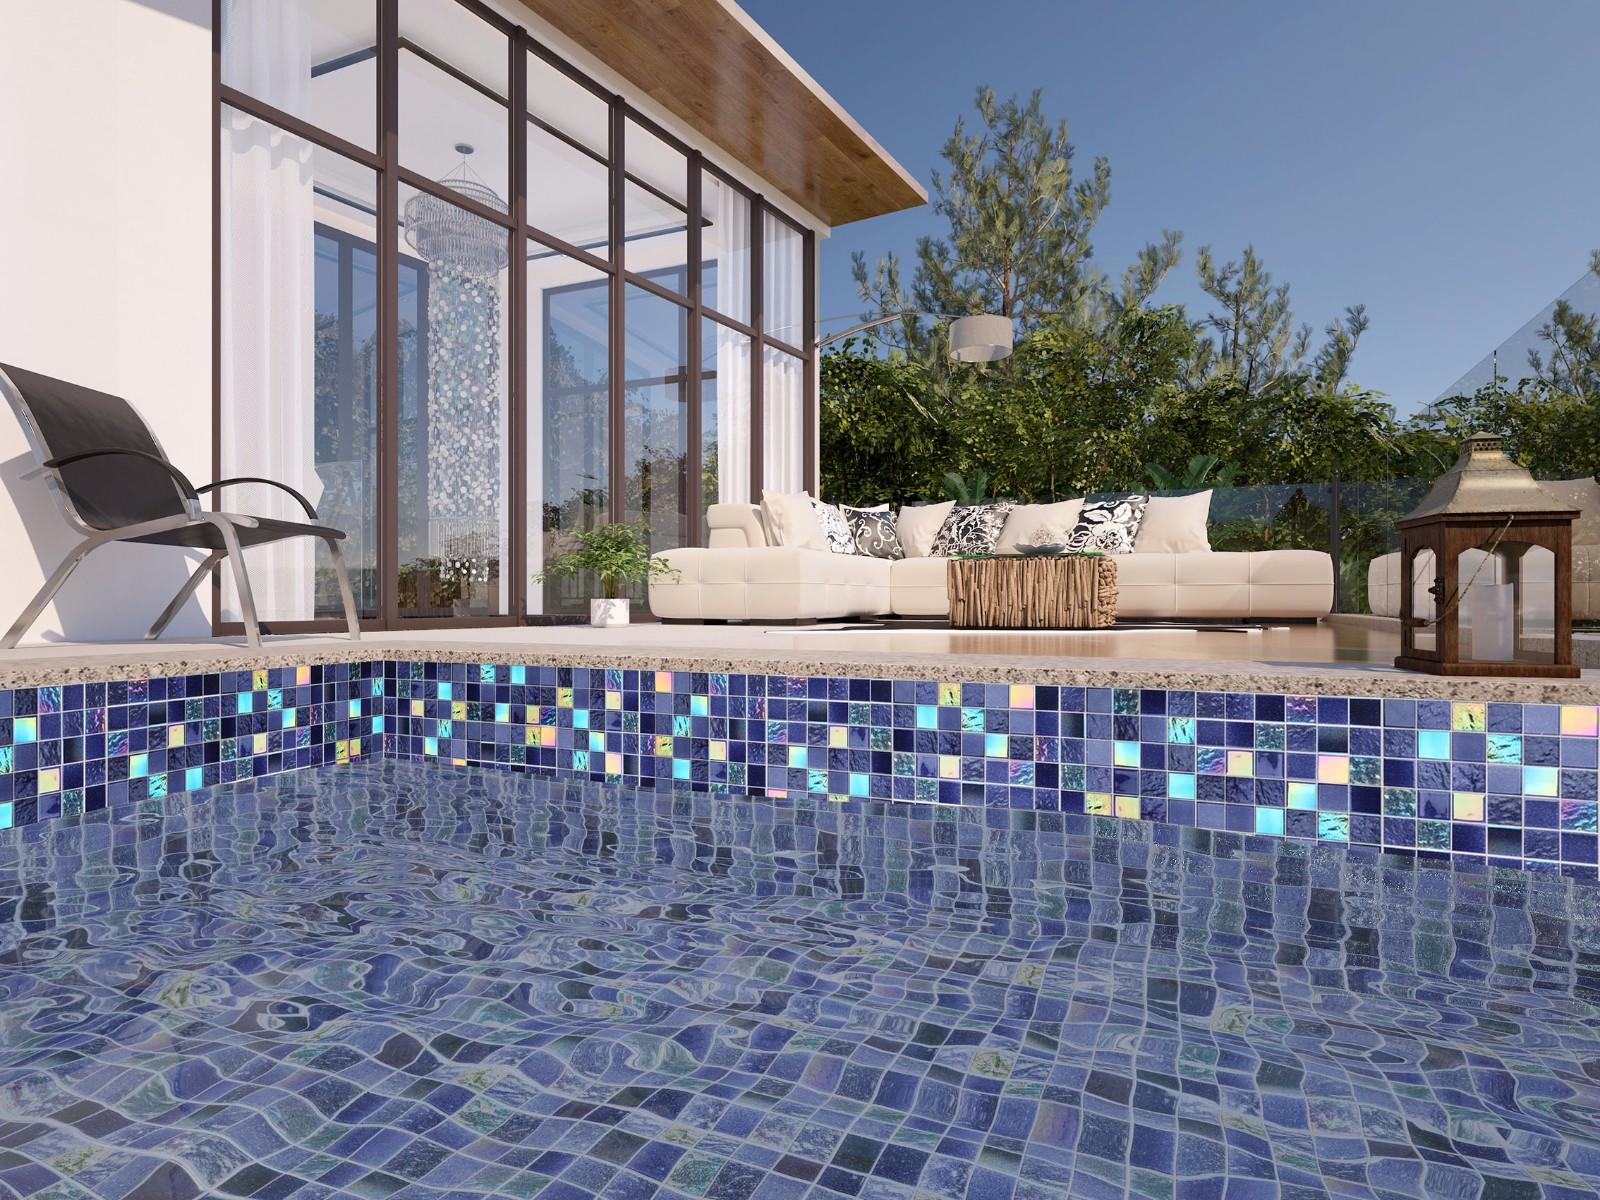 Heng Xing-Oem White Pool Tile Manufacturer, Pool Deck Tiles | Heng Xing-5